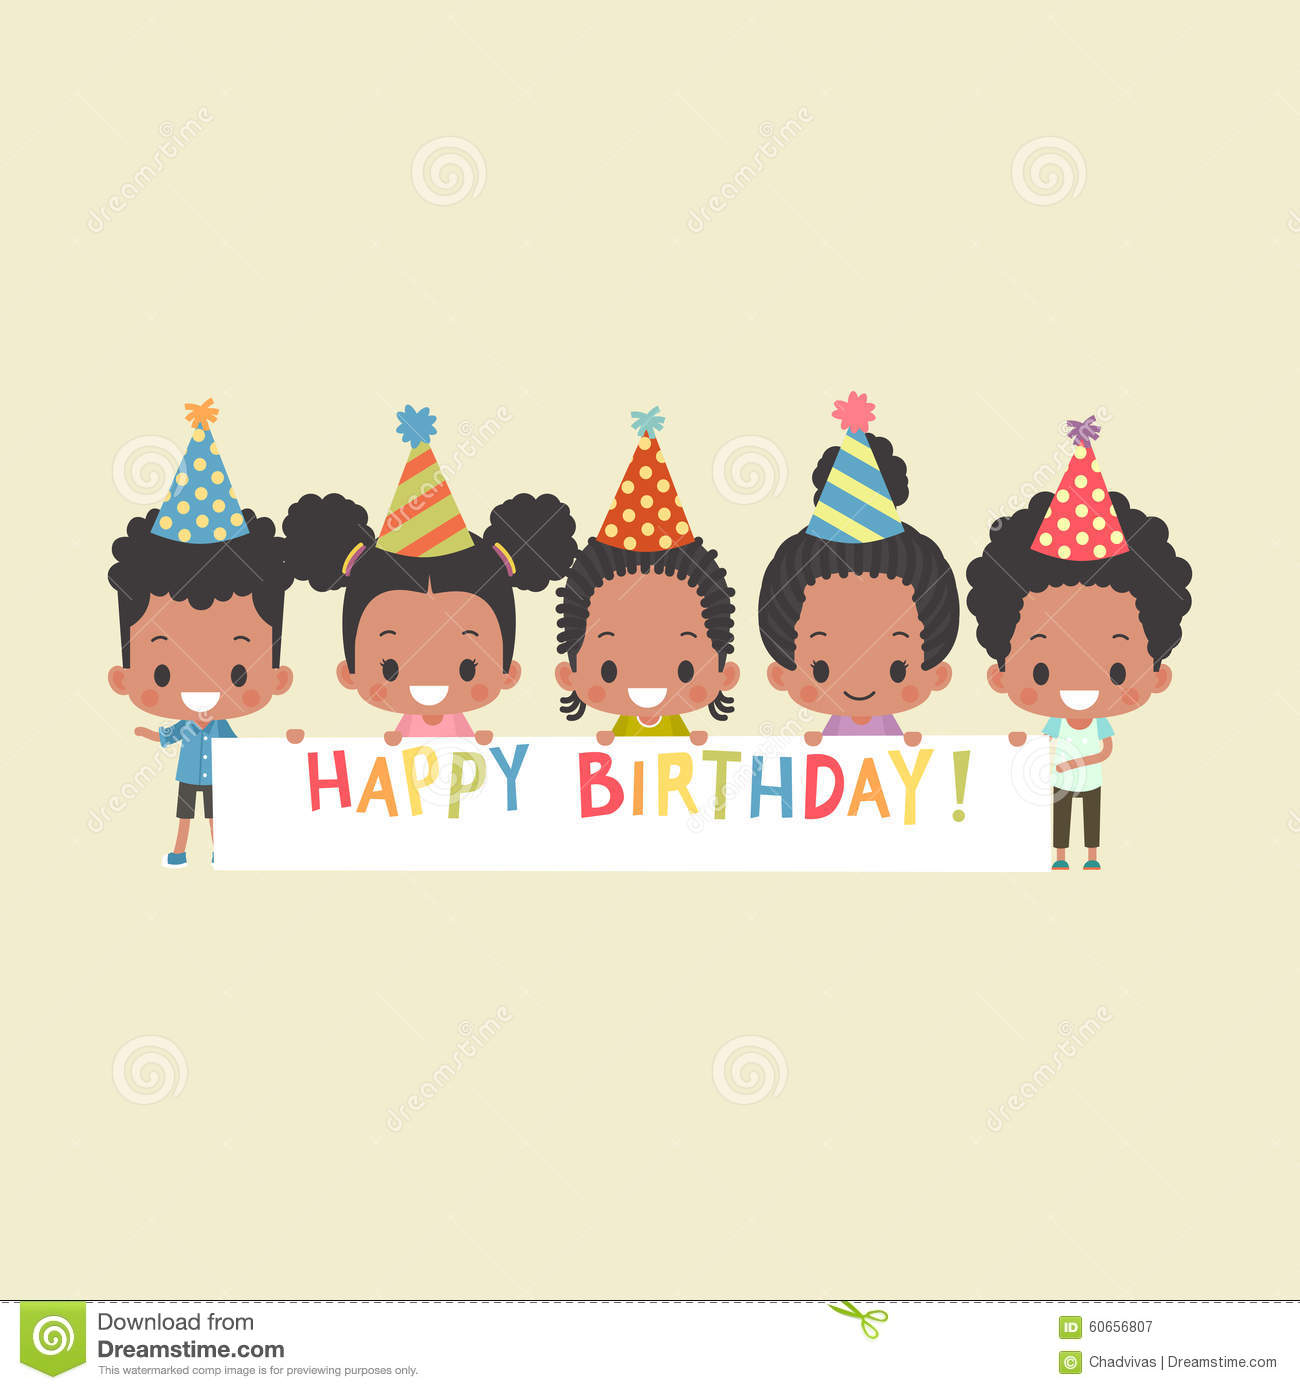 African american kids happy birthday banner stock vector african american kids happy birthday banner kristyandbryce Image collections